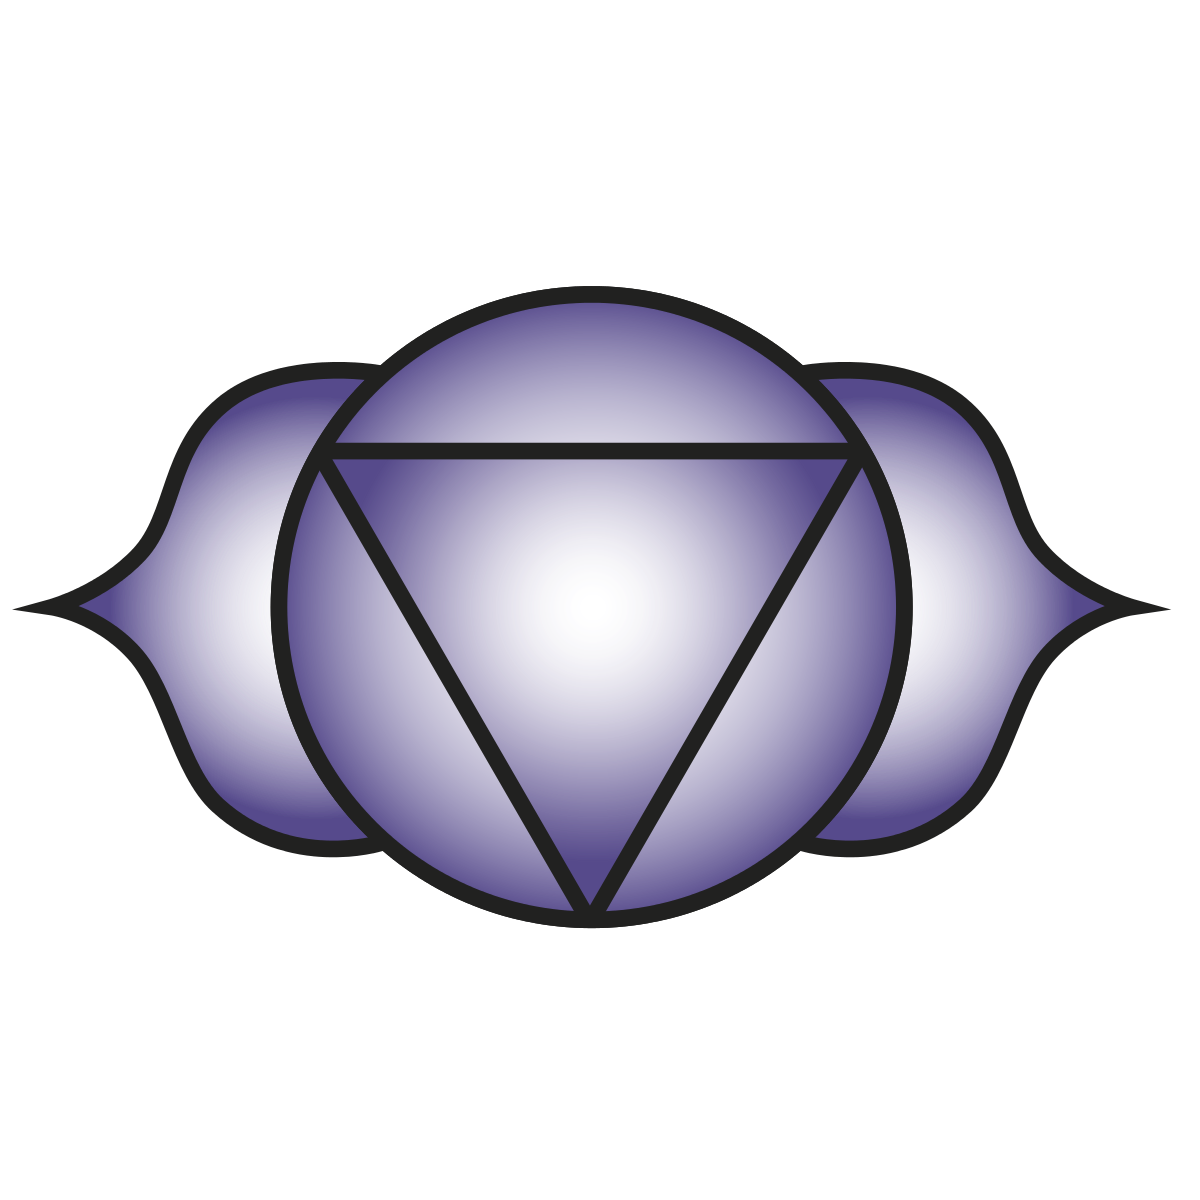 Crown chakra clipart graphic free library Ajna - Wikipedia graphic free library